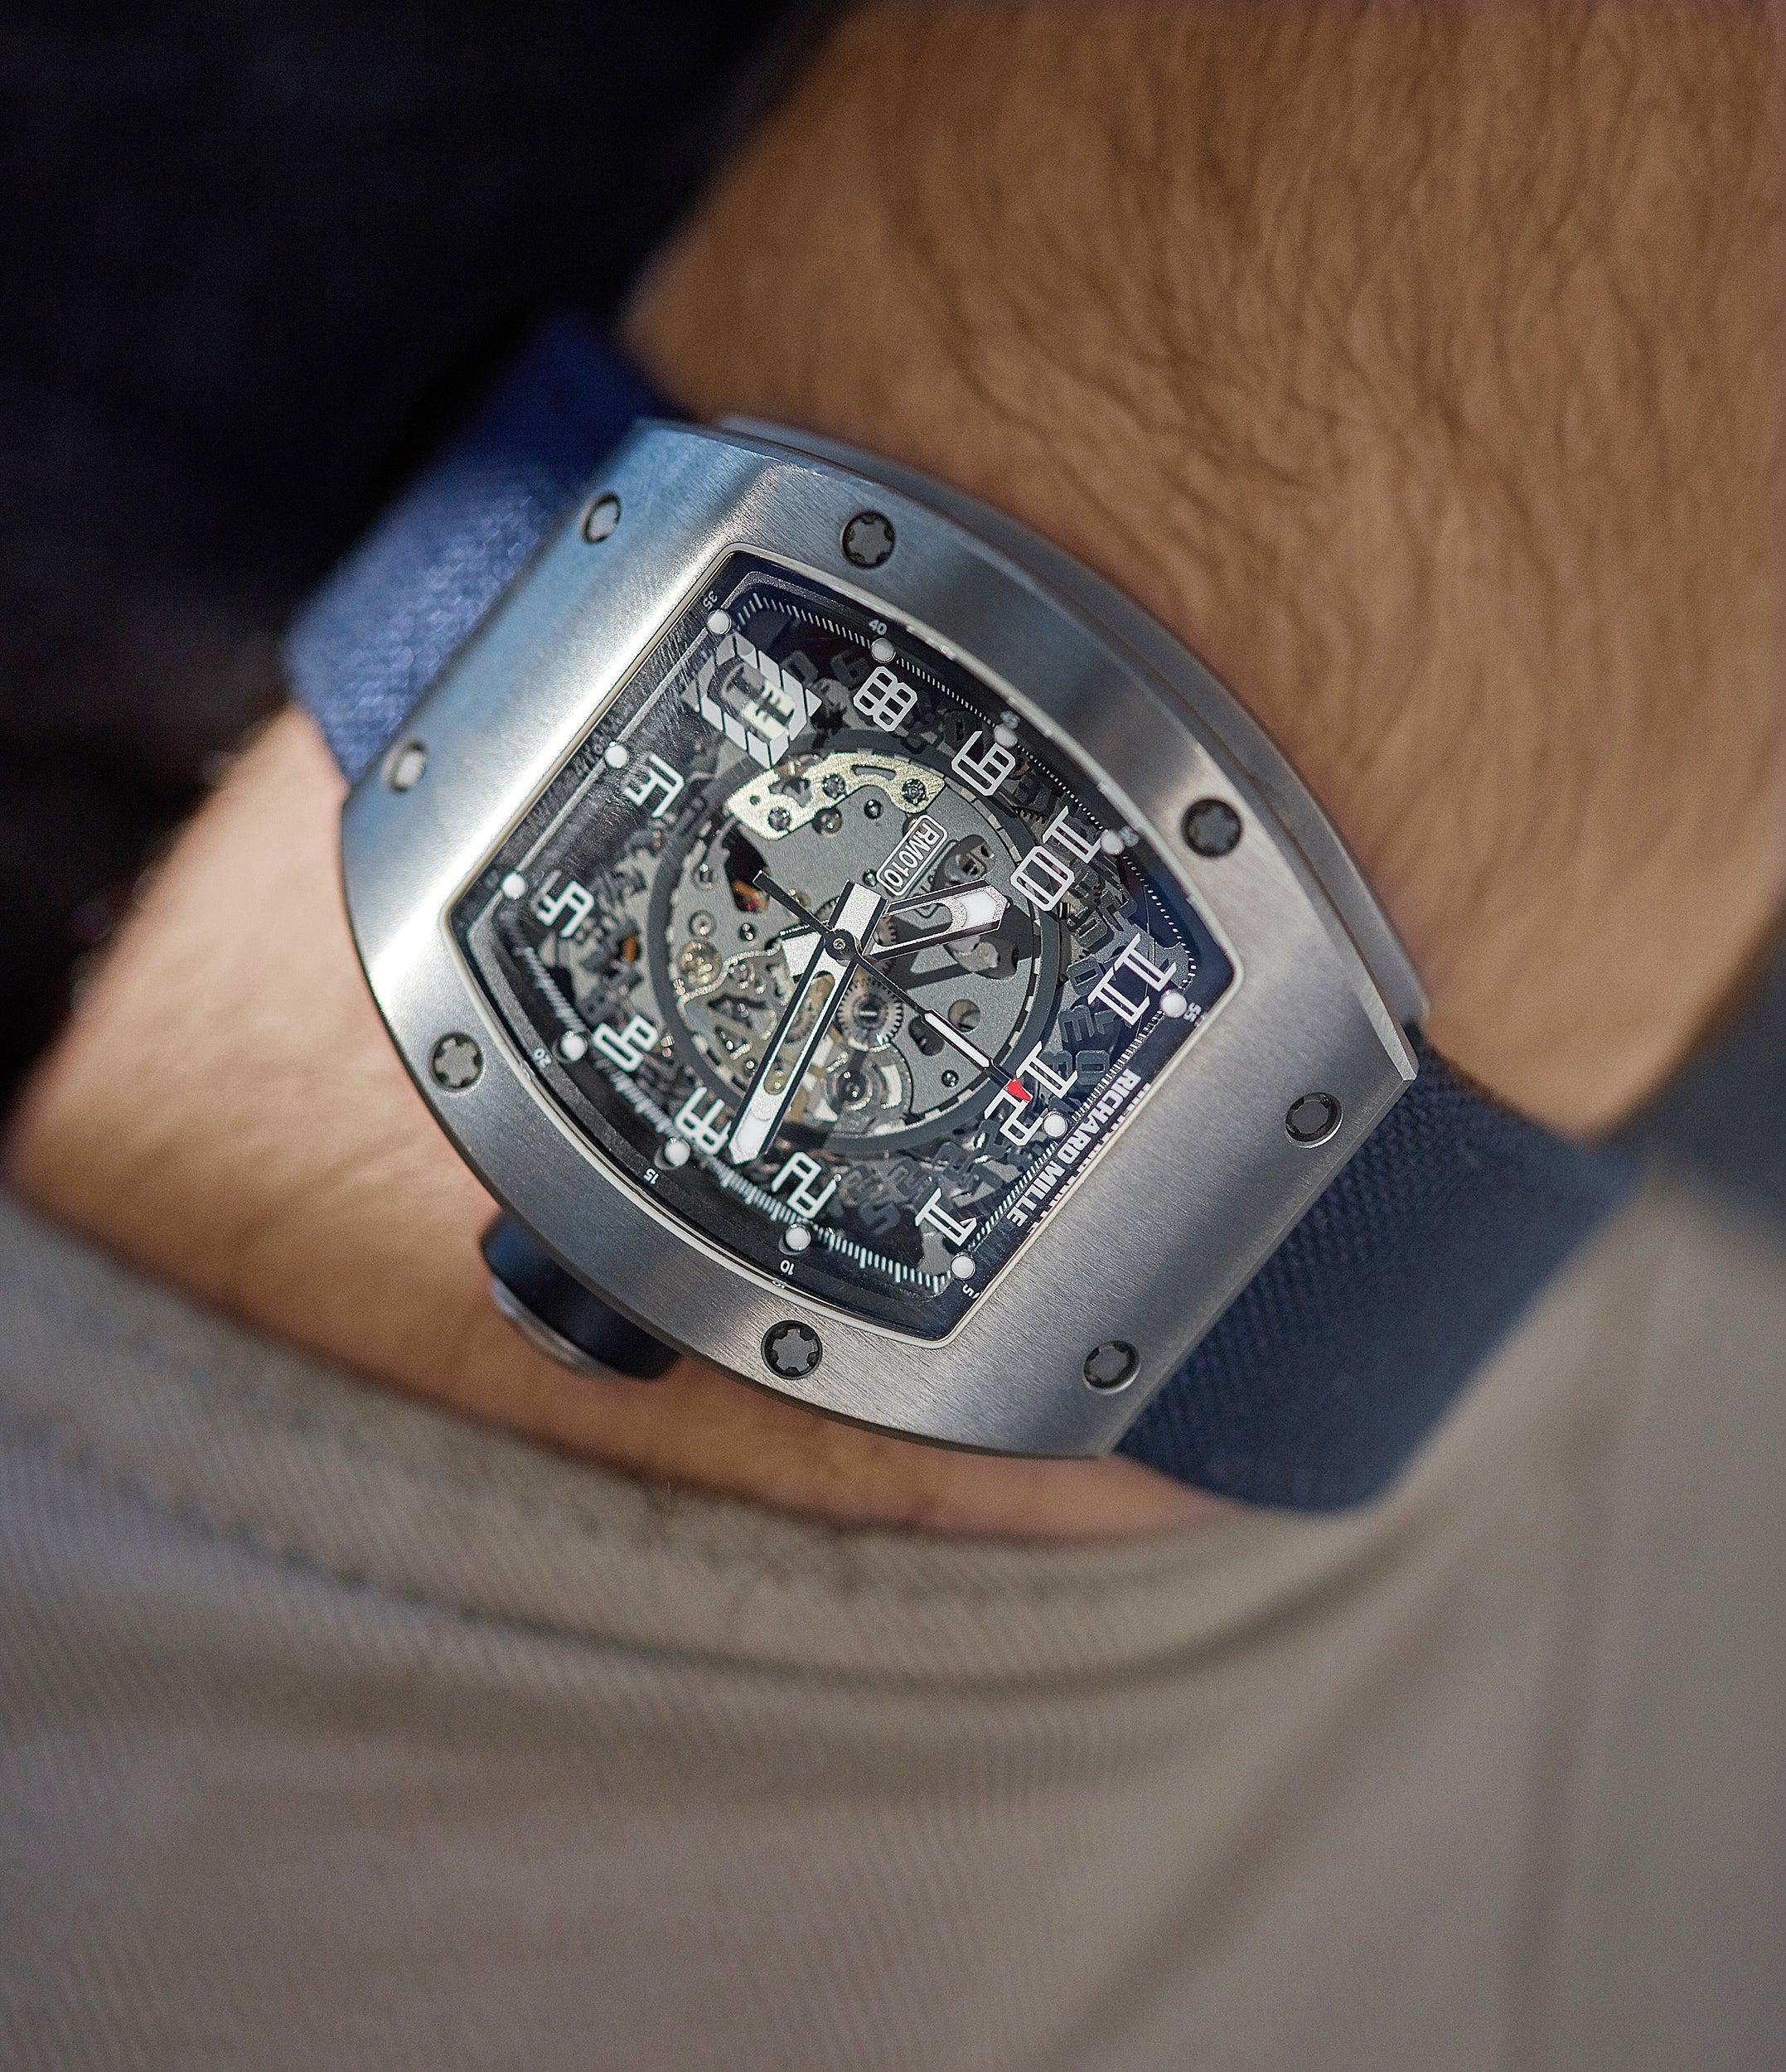 wristwatch Richard Mille RM010 titanium rare luxury sport watch by independent watchmaker for sale online at A Collected Man London UK specialist of rare watches